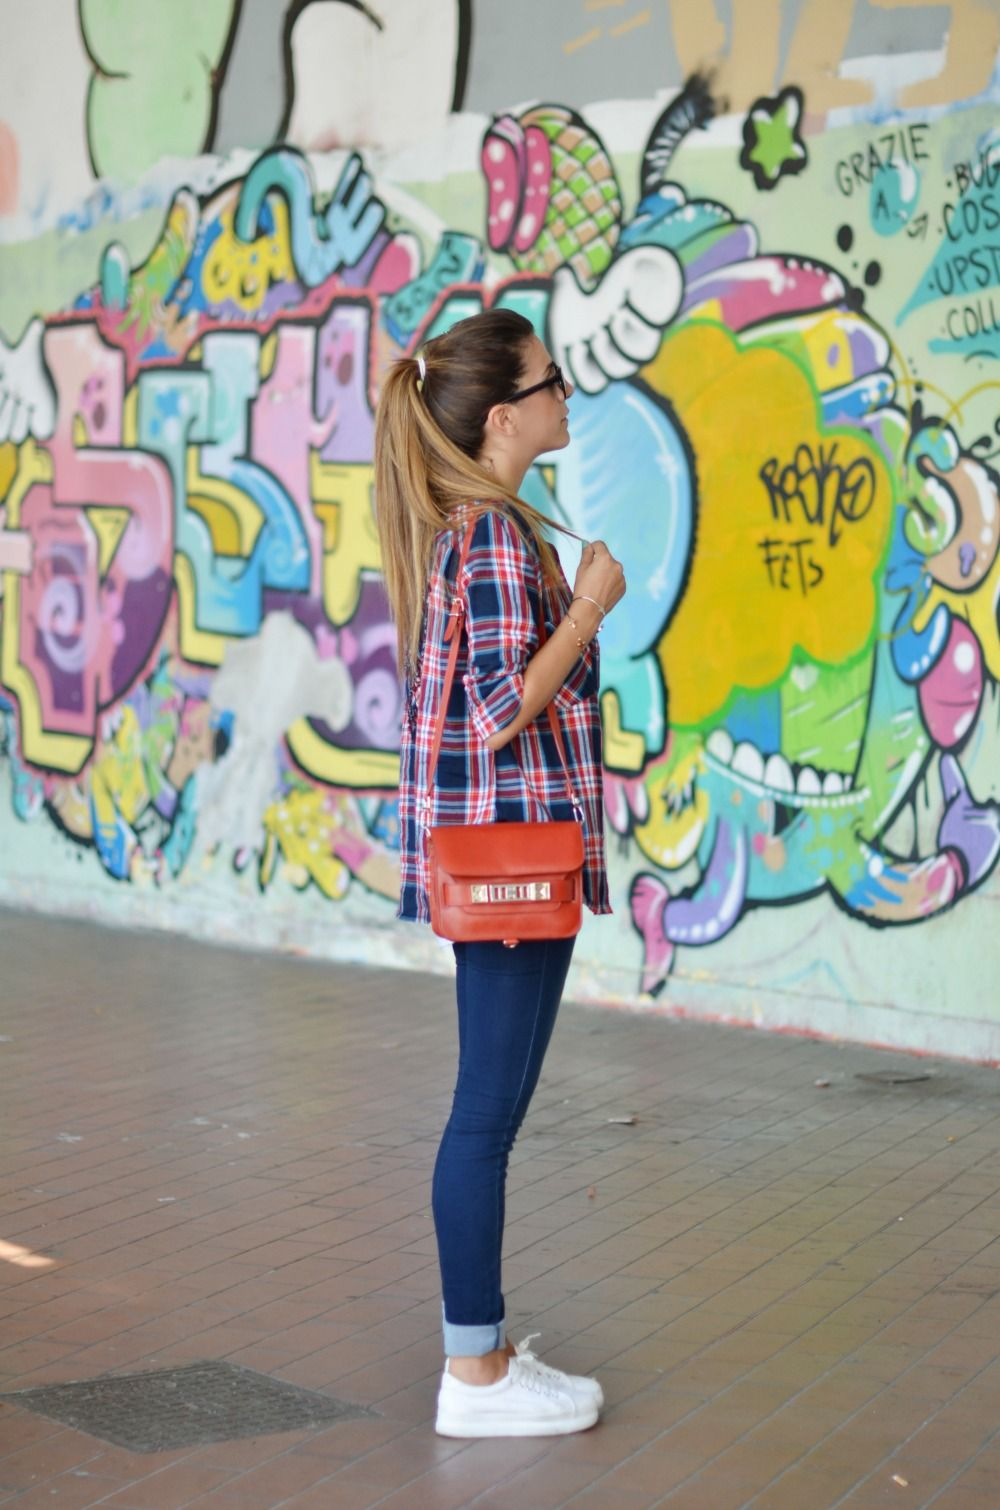 Flannel shirt trend  Sneaking the trend   STYLE  STREET LOOKS  Pinterest  Plaid